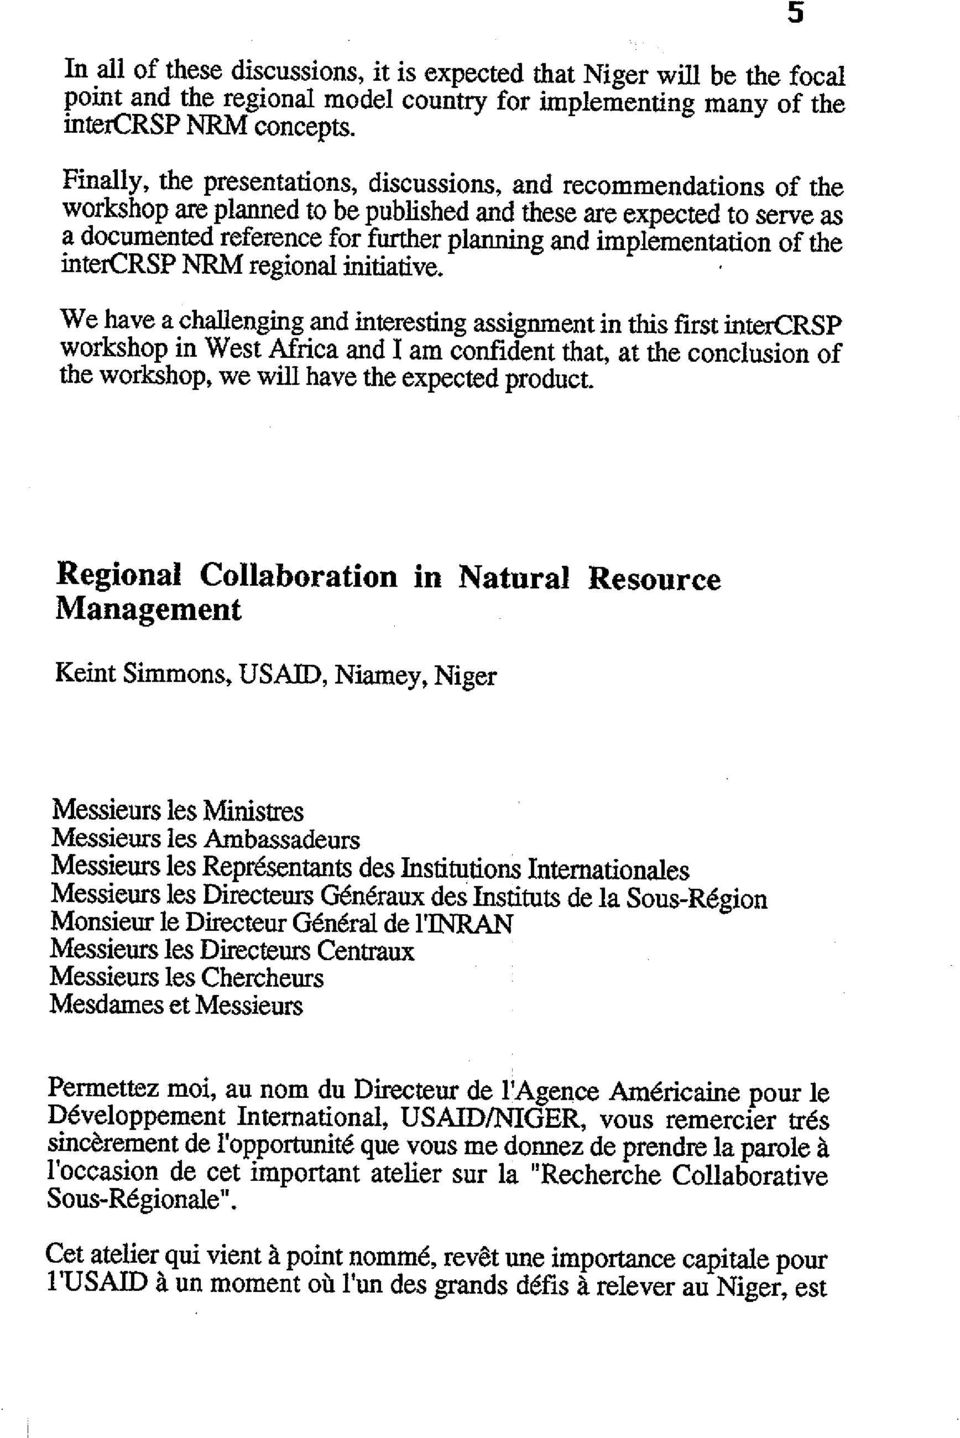 implementation of the intercrsp NRM regional initiative.